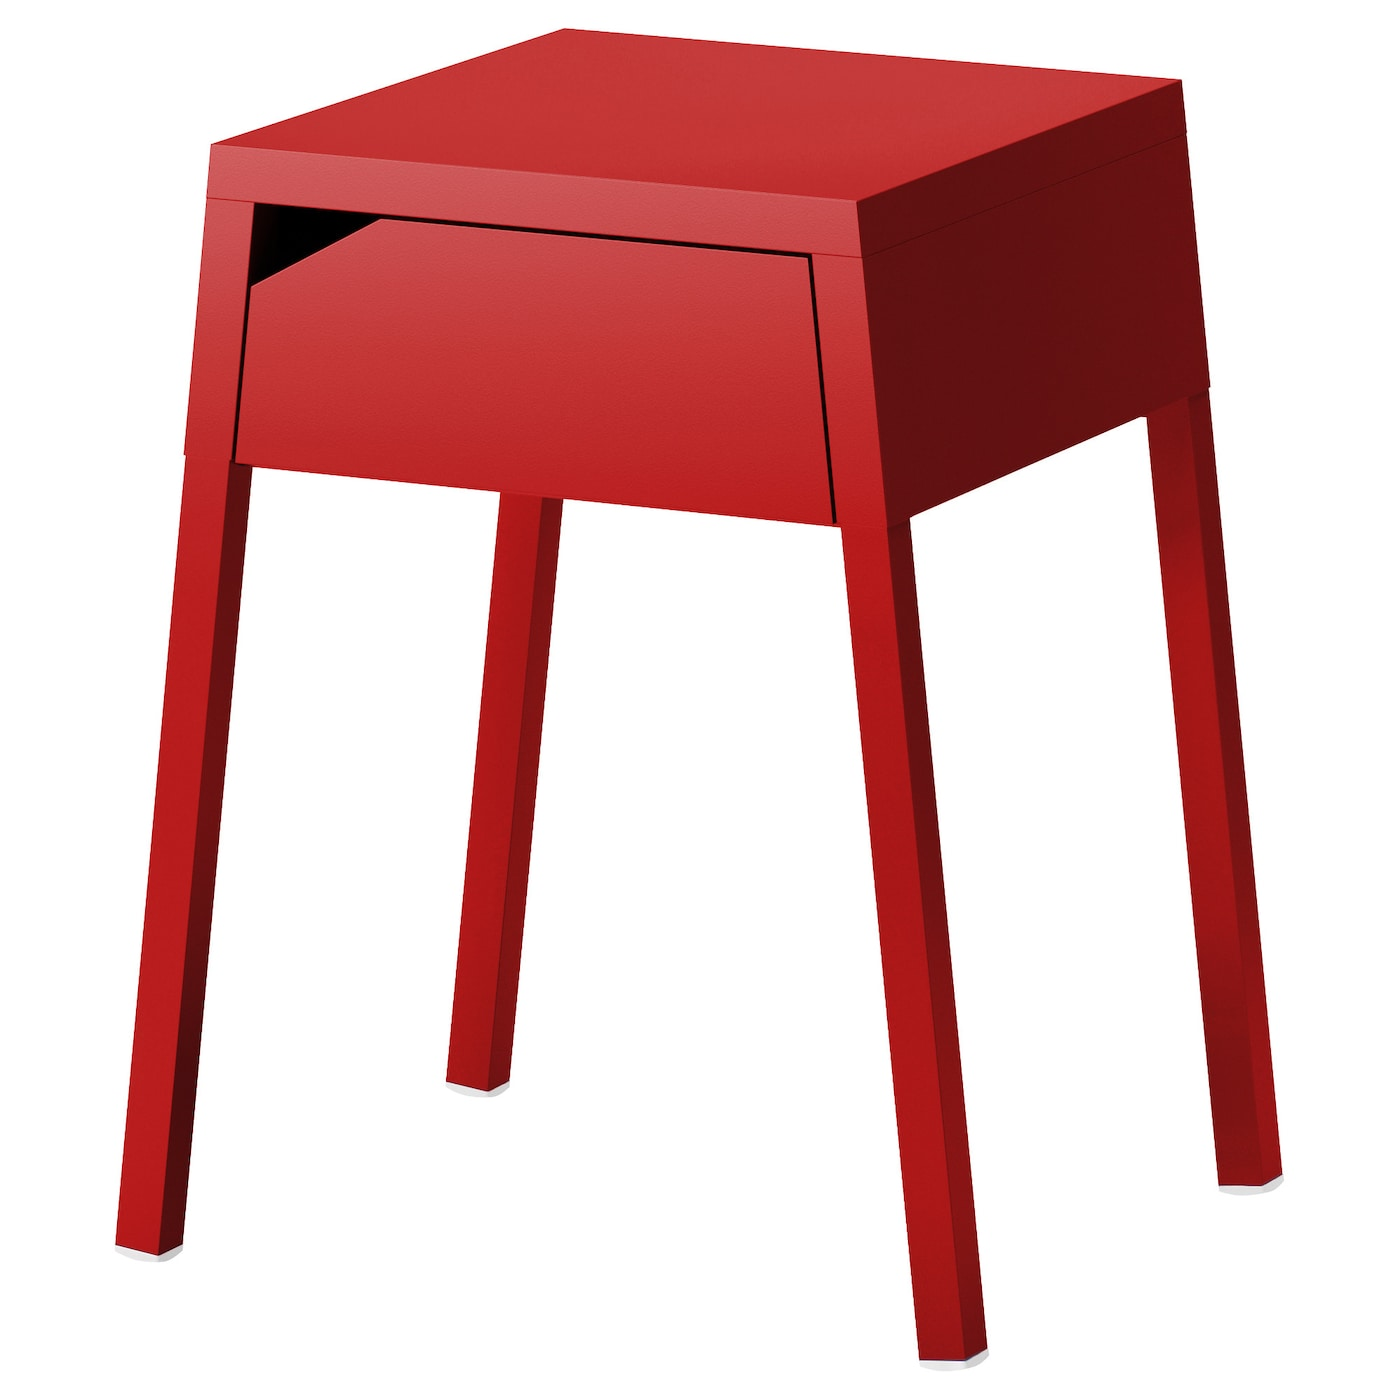 Selje bedside table red 46x37 cm ikea for Table en pin ikea